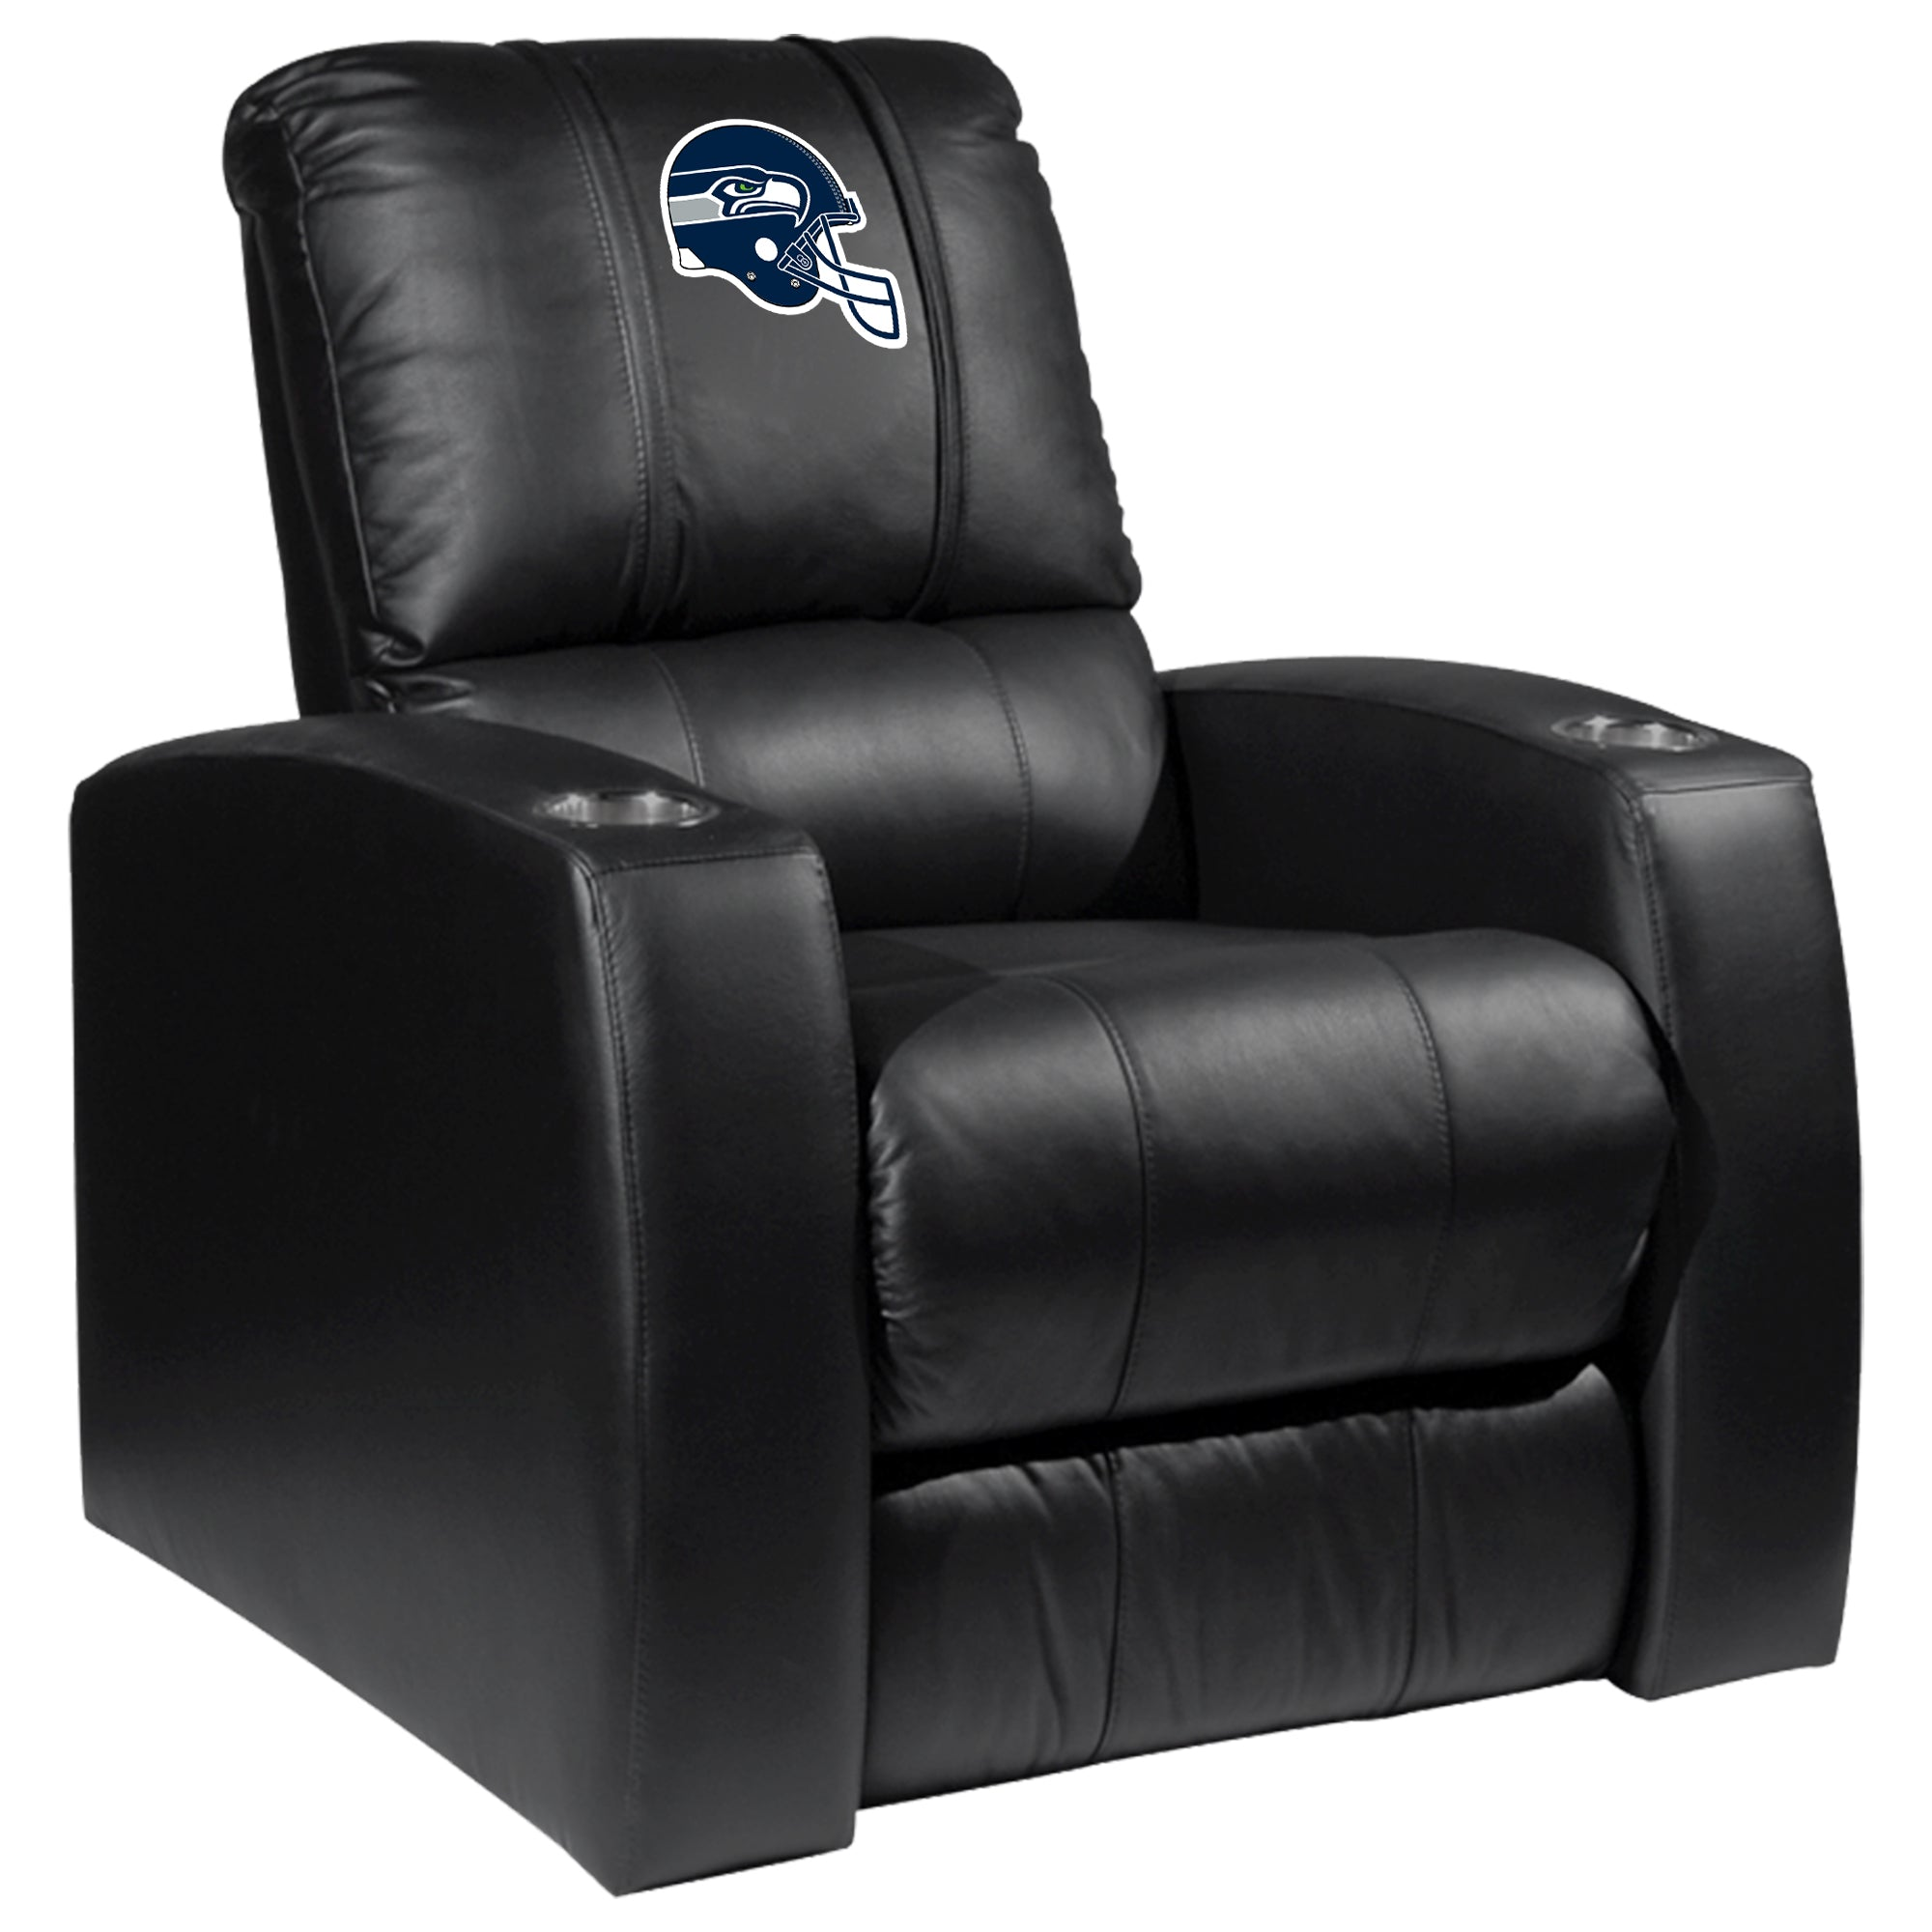 Relax Recliner with  Seattle Seahawks Helmet Logo